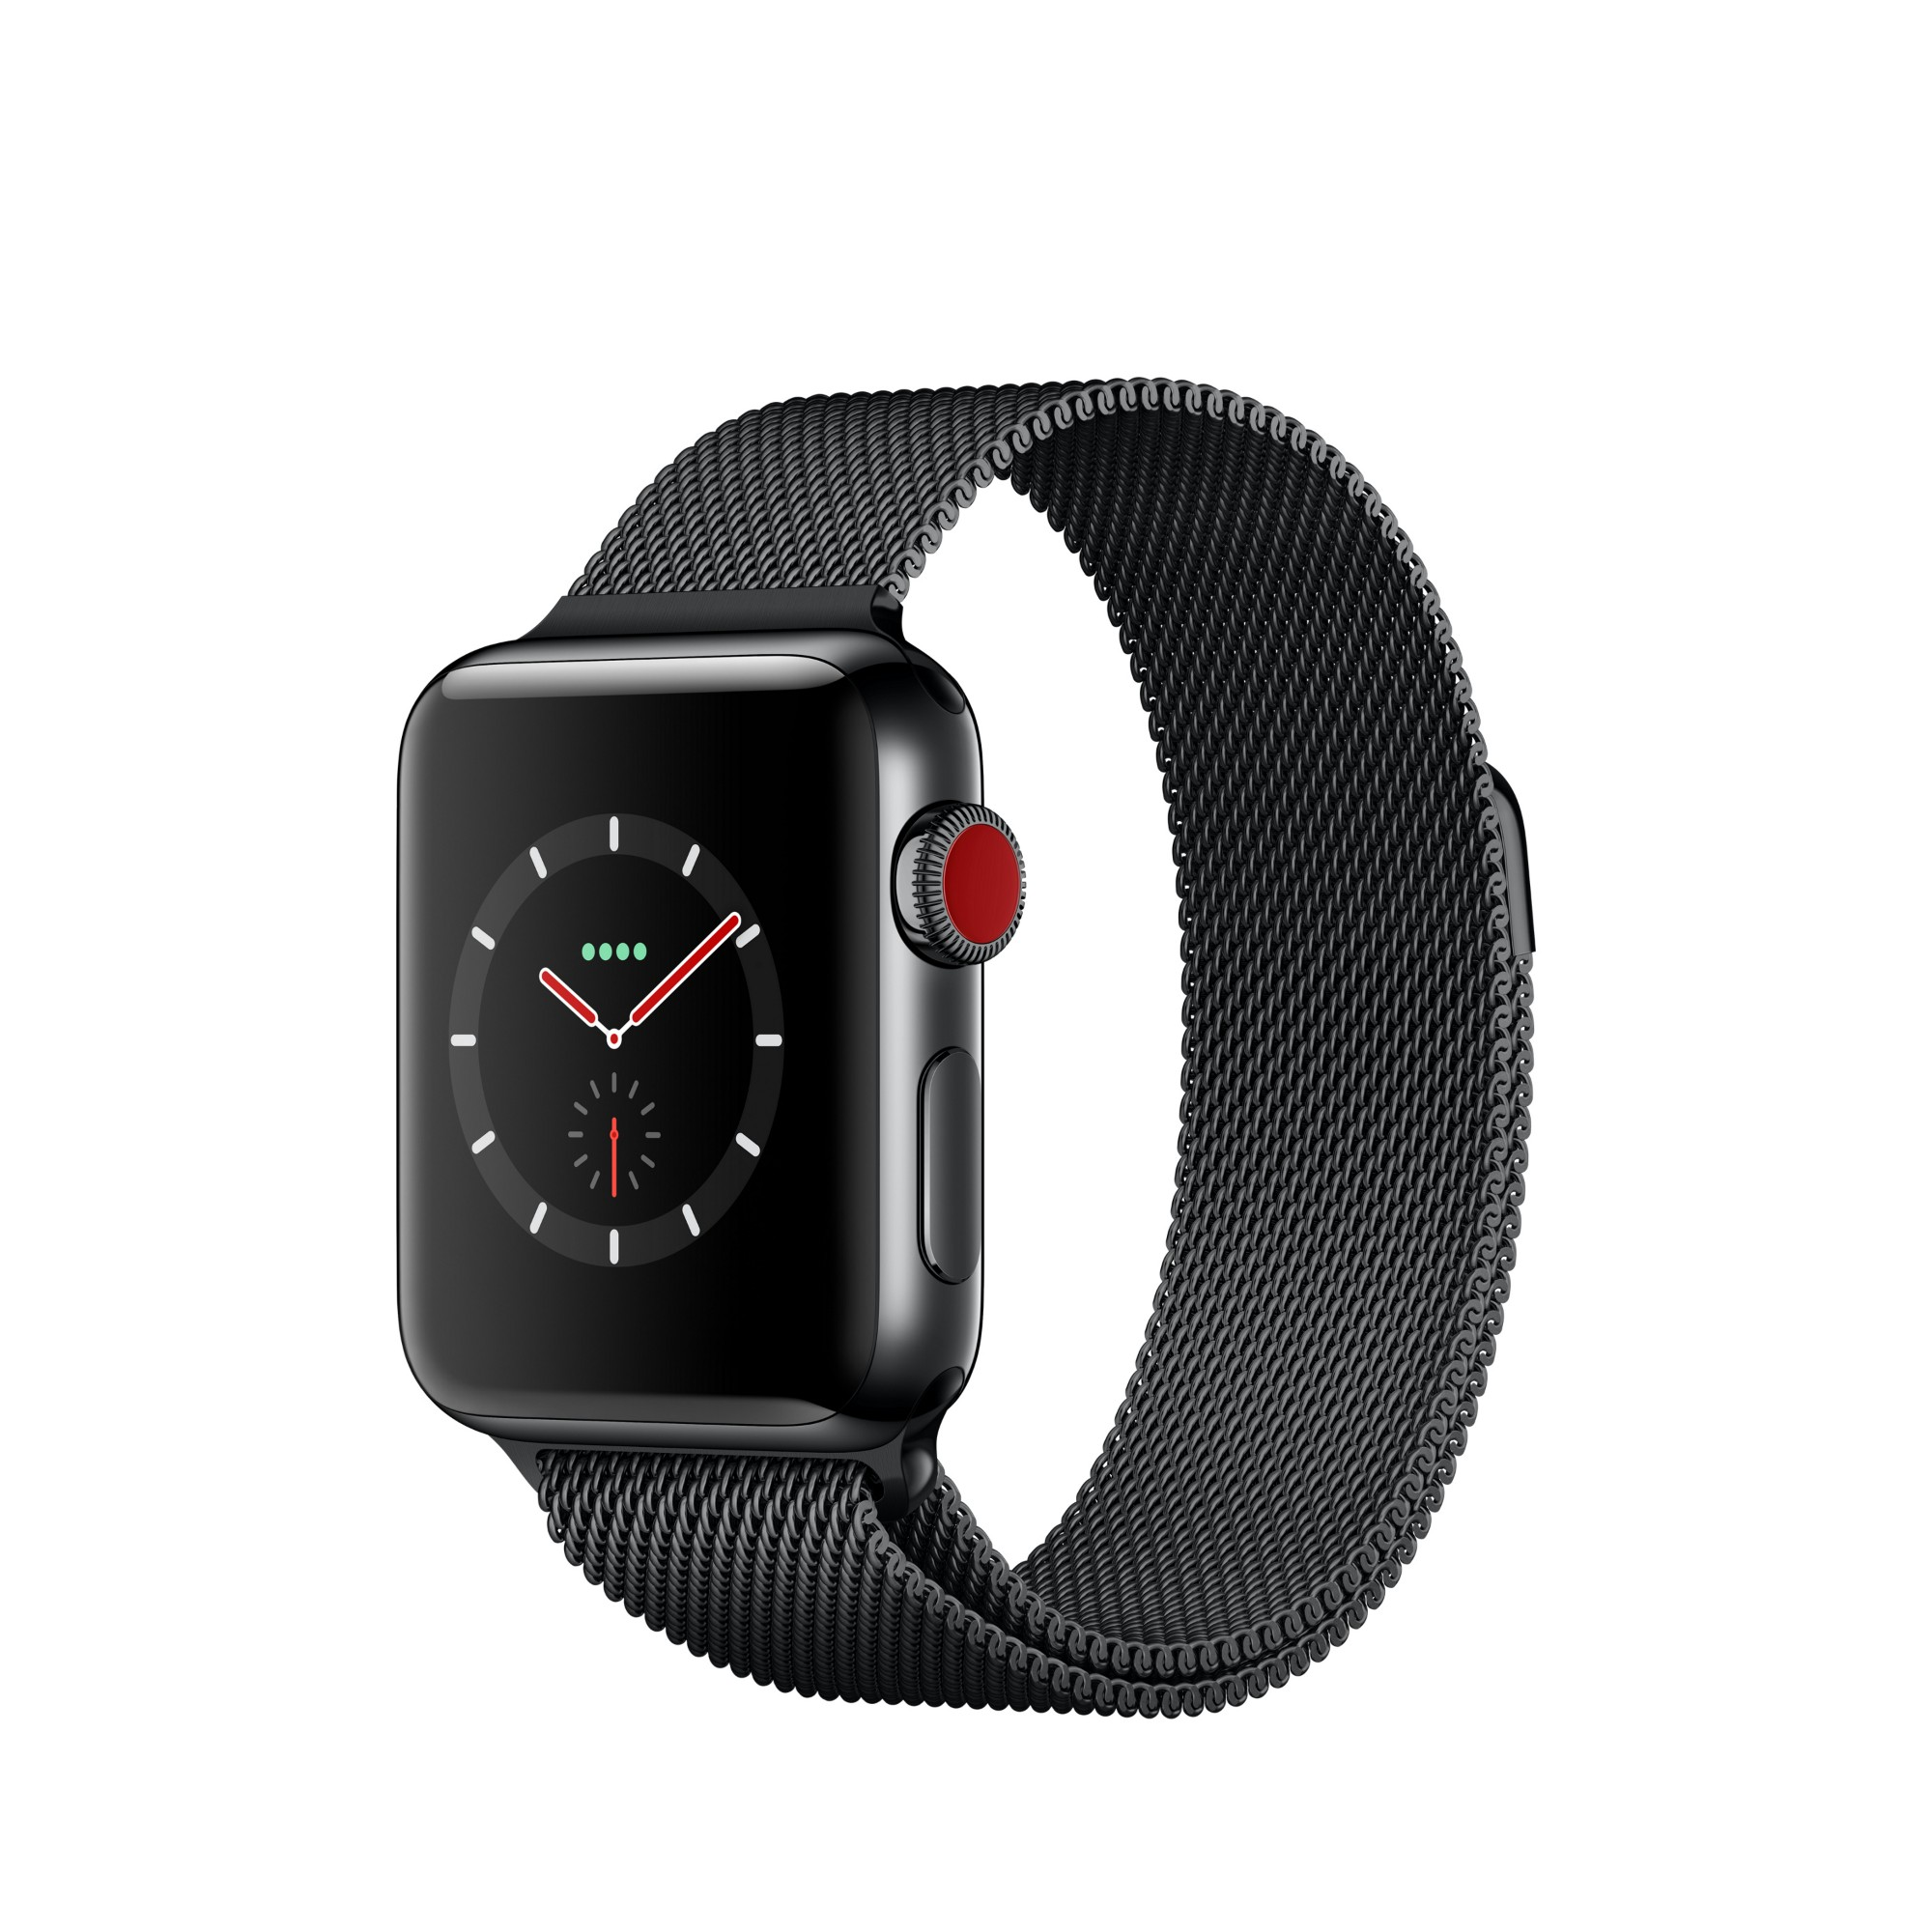 APPLE WATCH SERIES 3 OLED GPS (SATELLITE) CELLULAR BLACK SMARTWATCH